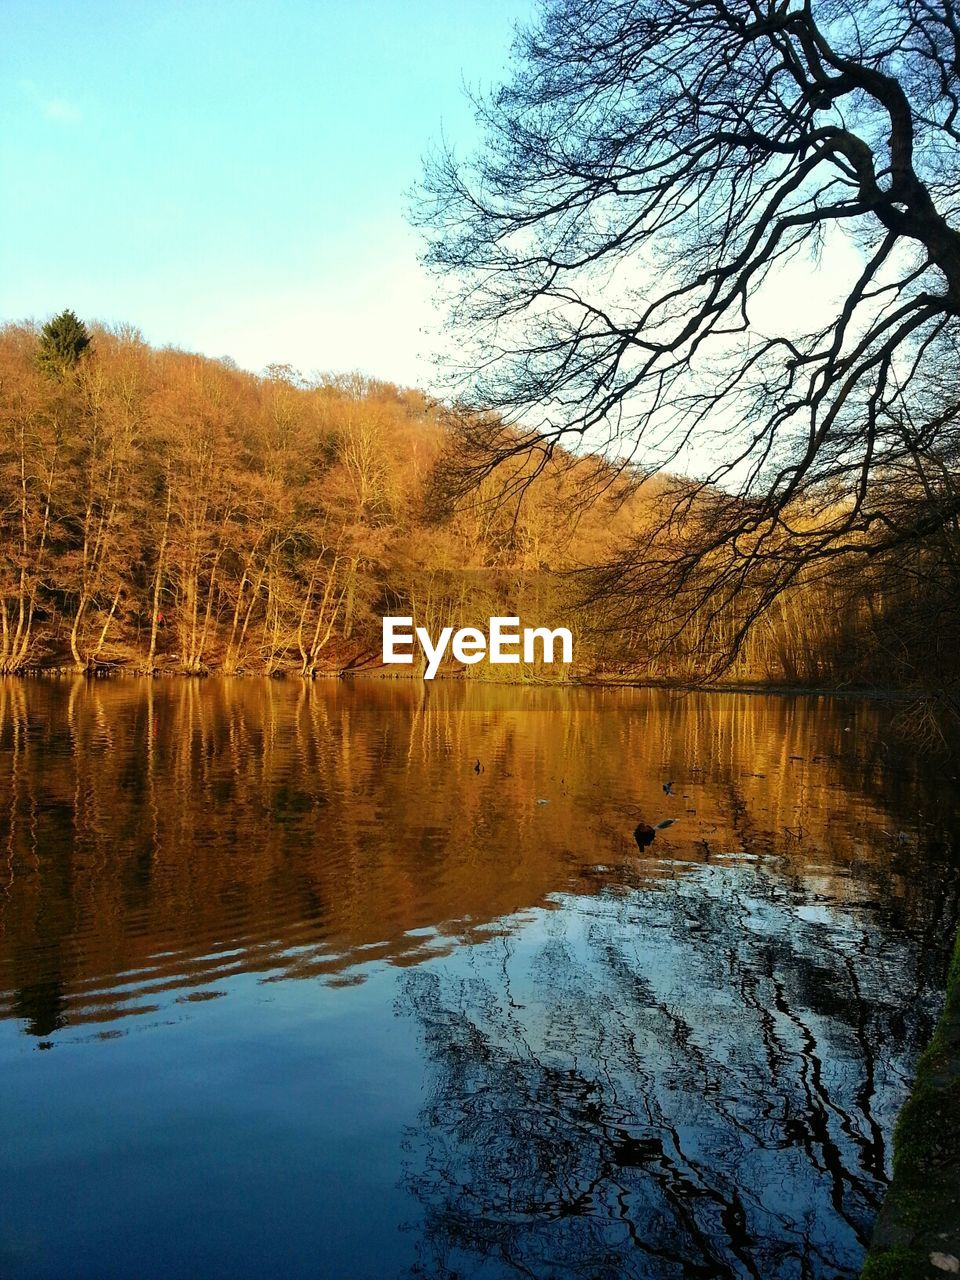 reflection, lake, water, tree, nature, tranquil scene, beauty in nature, scenics, tranquility, outdoors, no people, day, sky, forest, bare tree